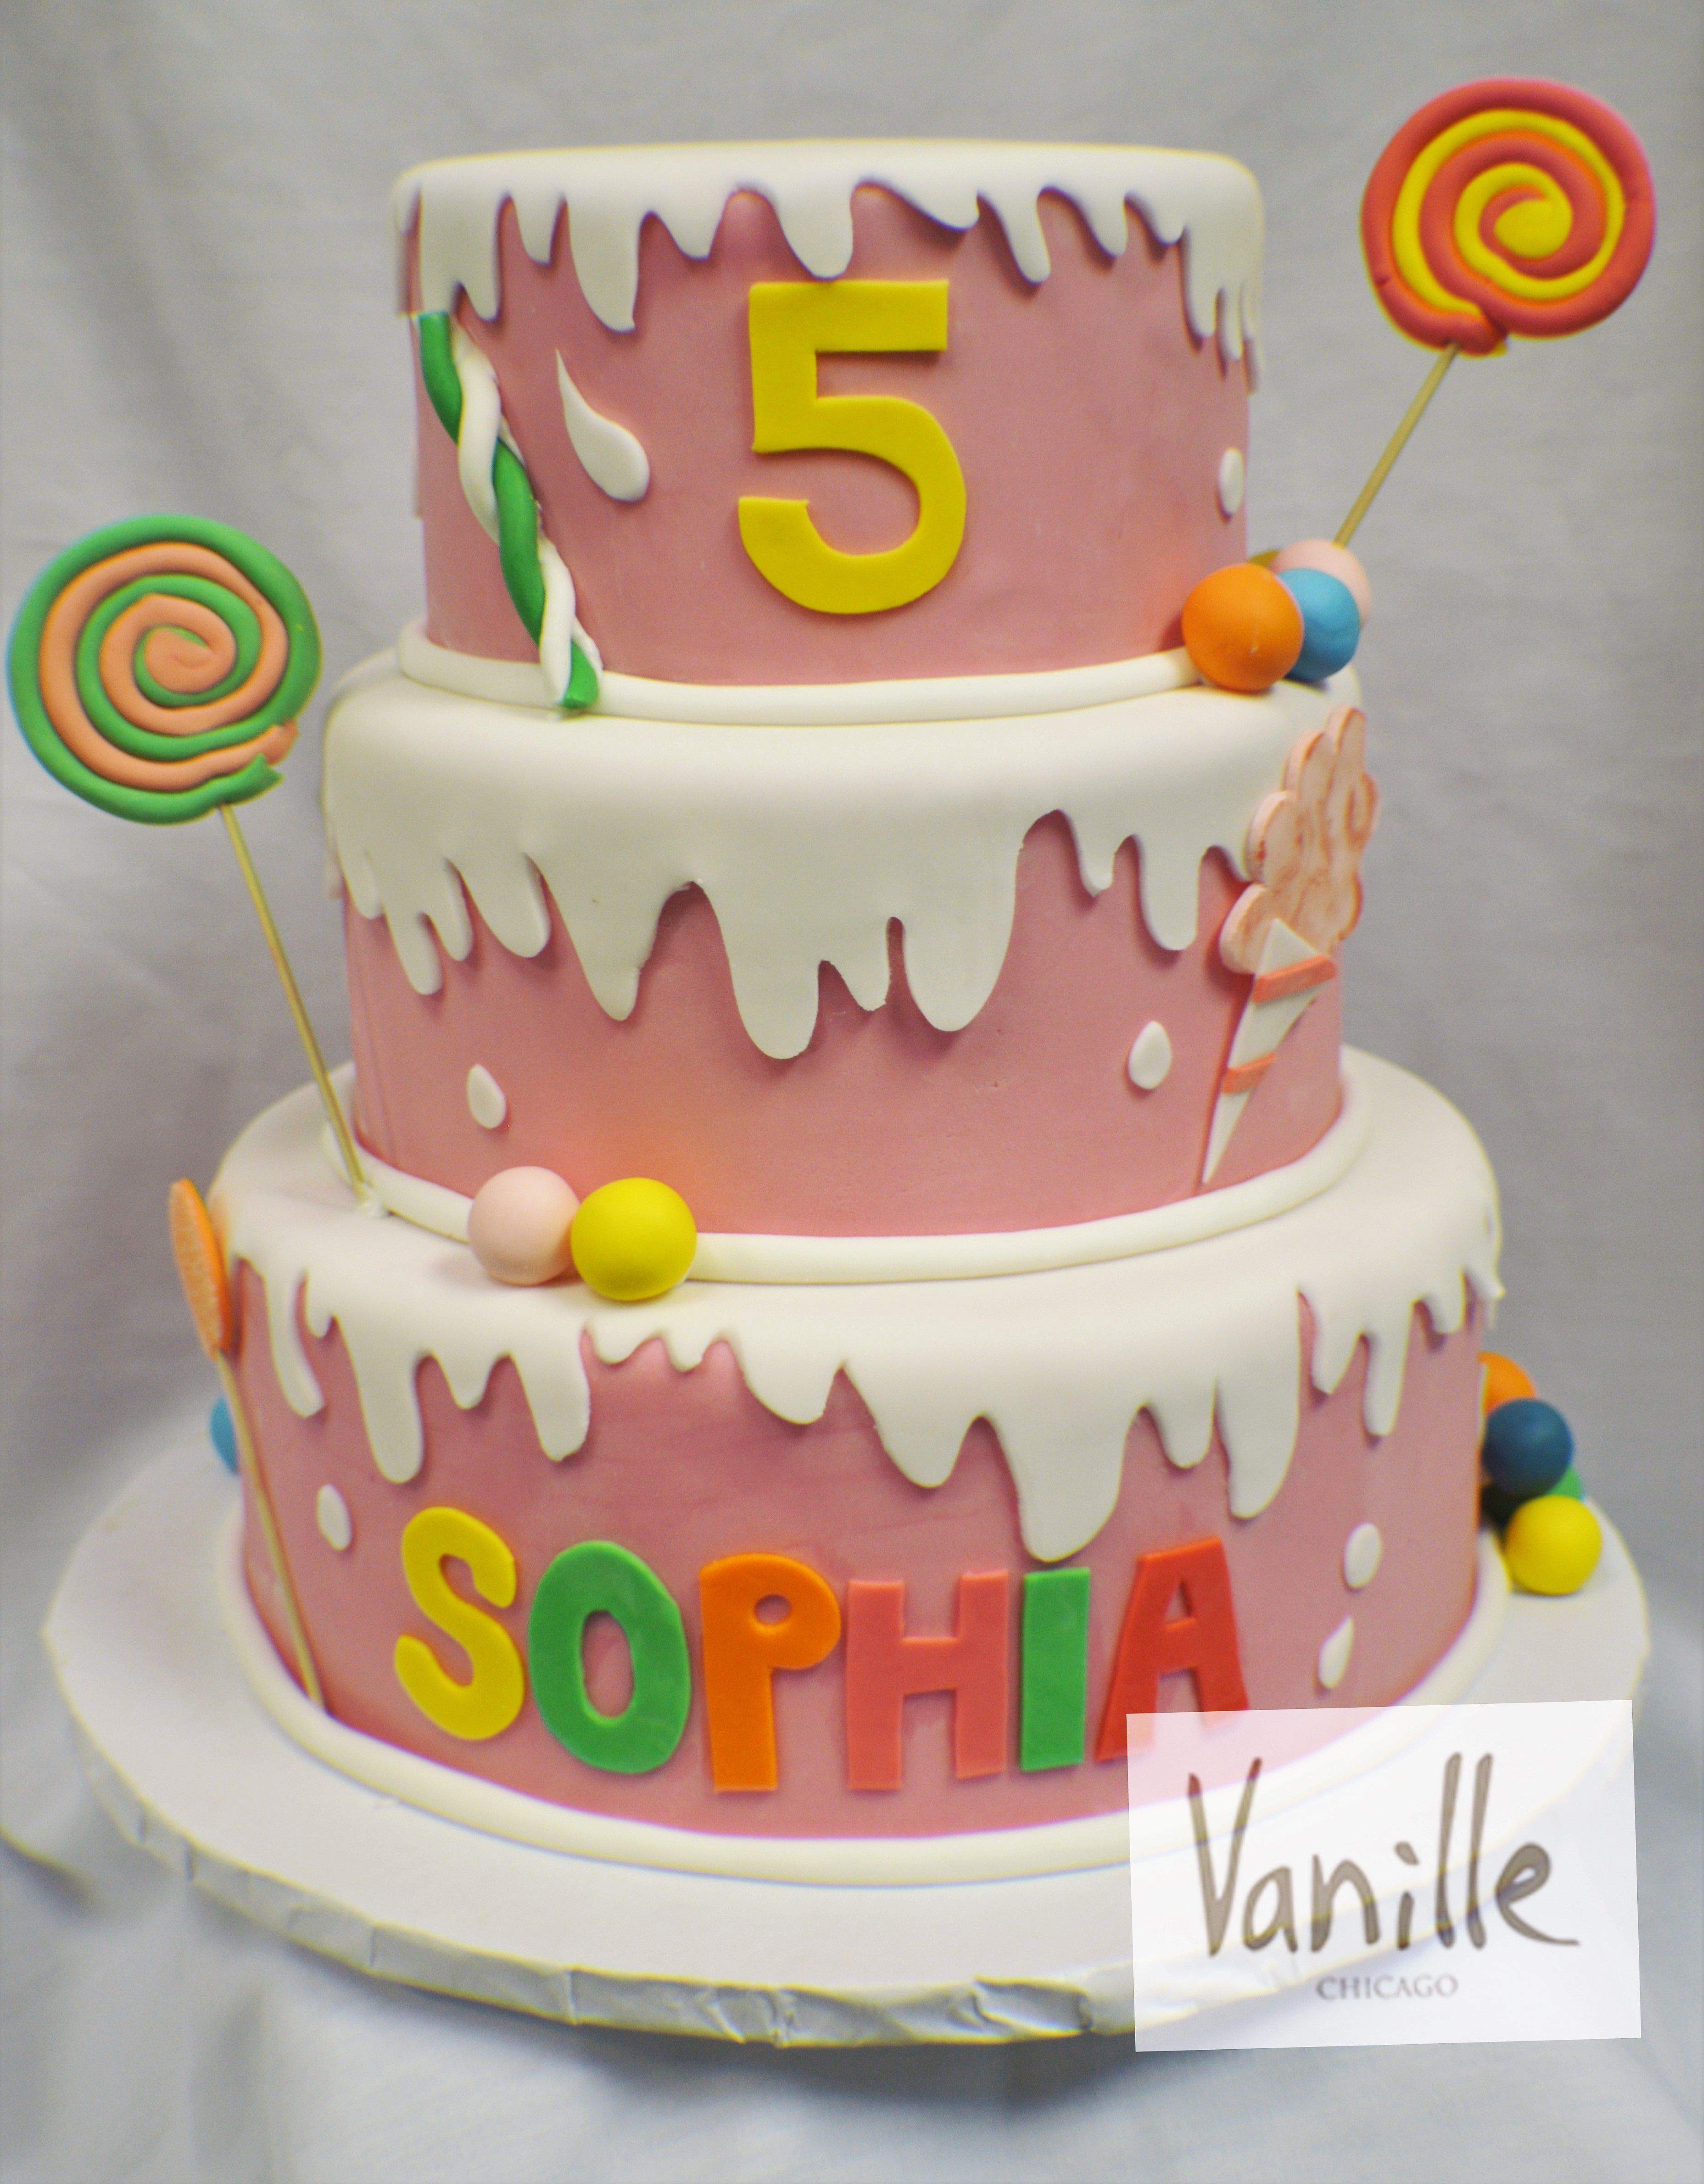 Swell Vanille Chicago Candy Birthday Cake Vck67 Candy Birthday Cakes Funny Birthday Cards Online Hendilapandamsfinfo